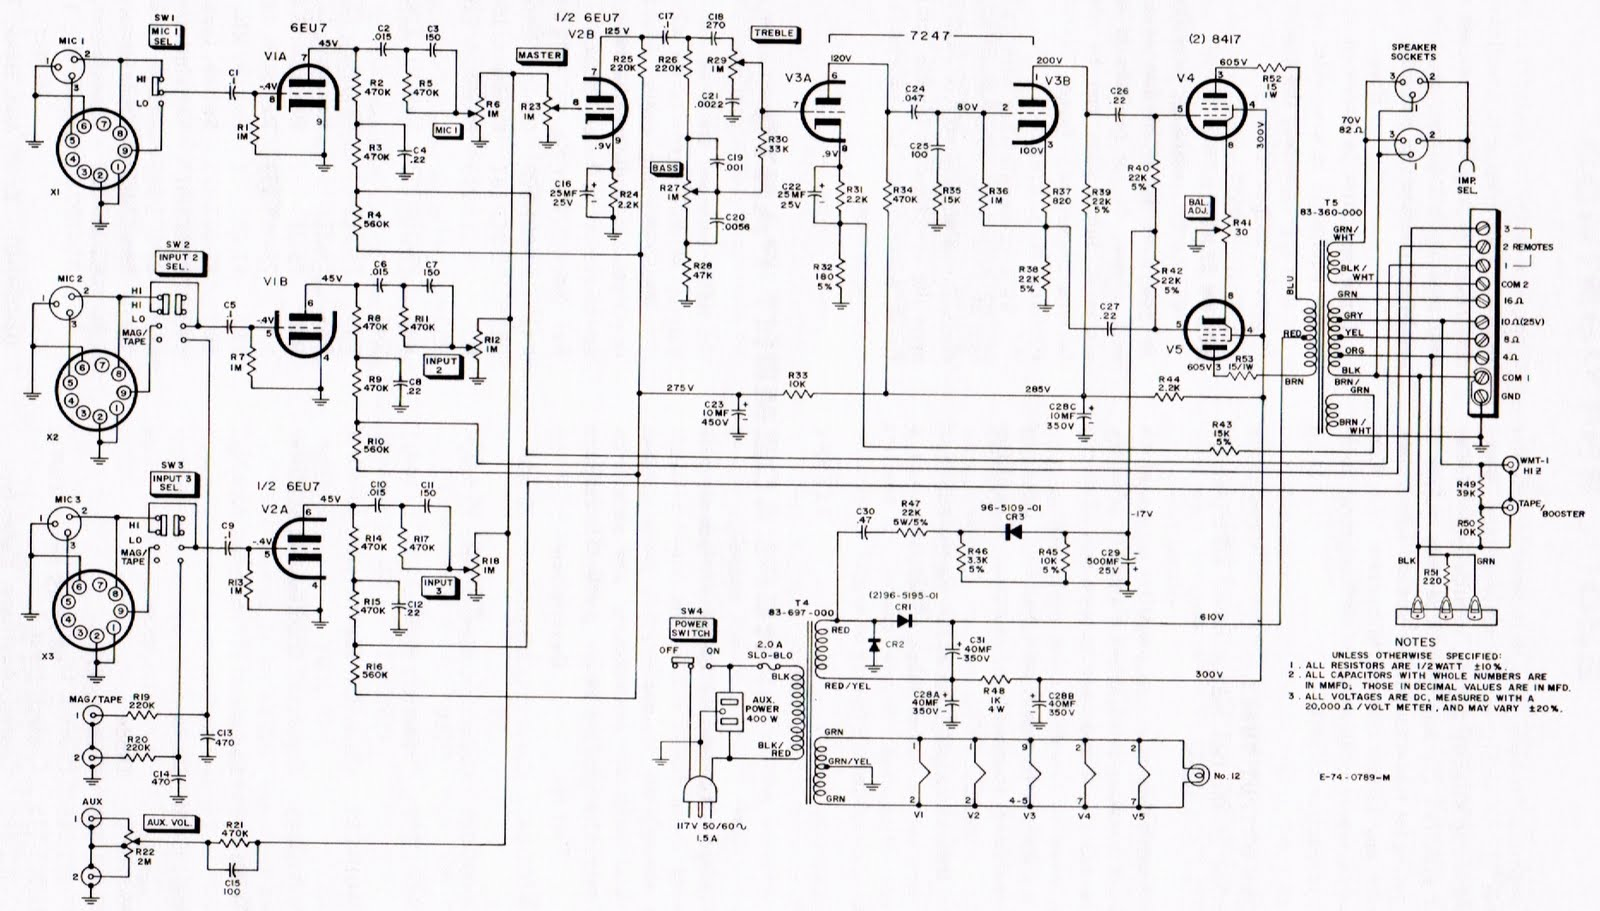 M60Aschematic log Single Phase Transformer Wiring Diagram at reclaimingppi.co